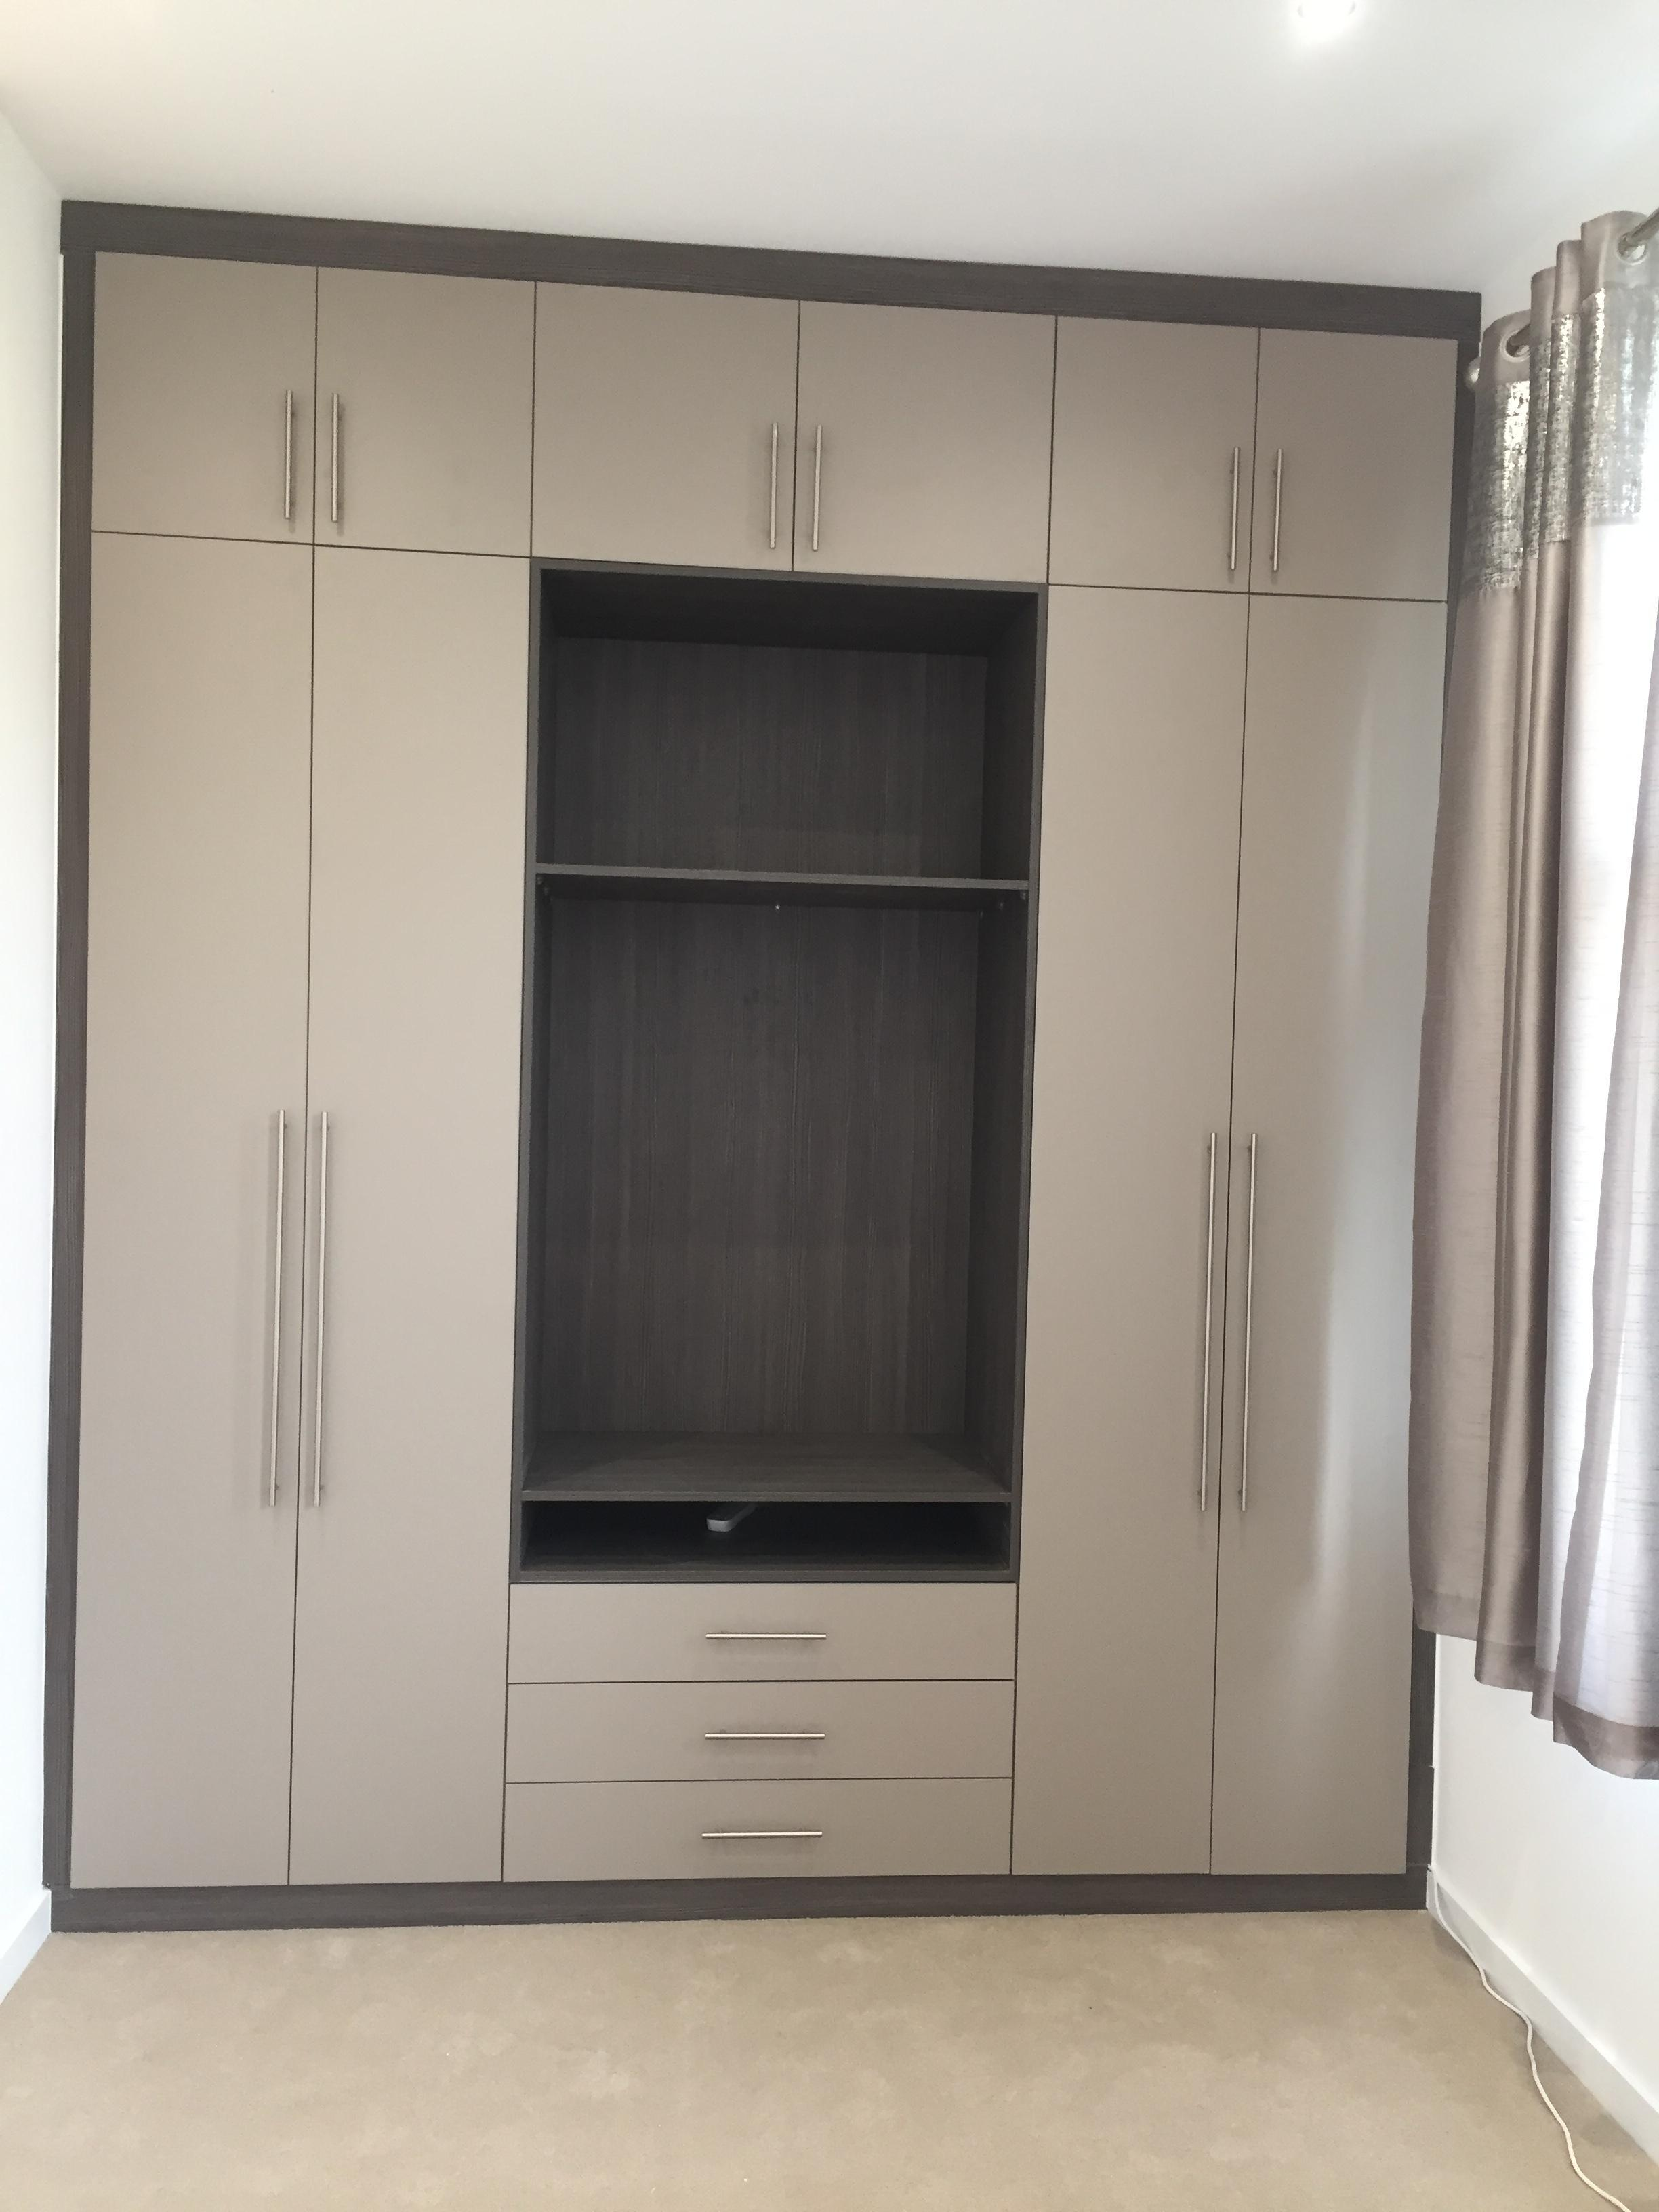 Merveilleux Fitted Bedroom Fitted Kitchens Fitted Wardrobes, Kitchen Fitters, Wardrobe  Fitters, Bespoke Wardrobe In